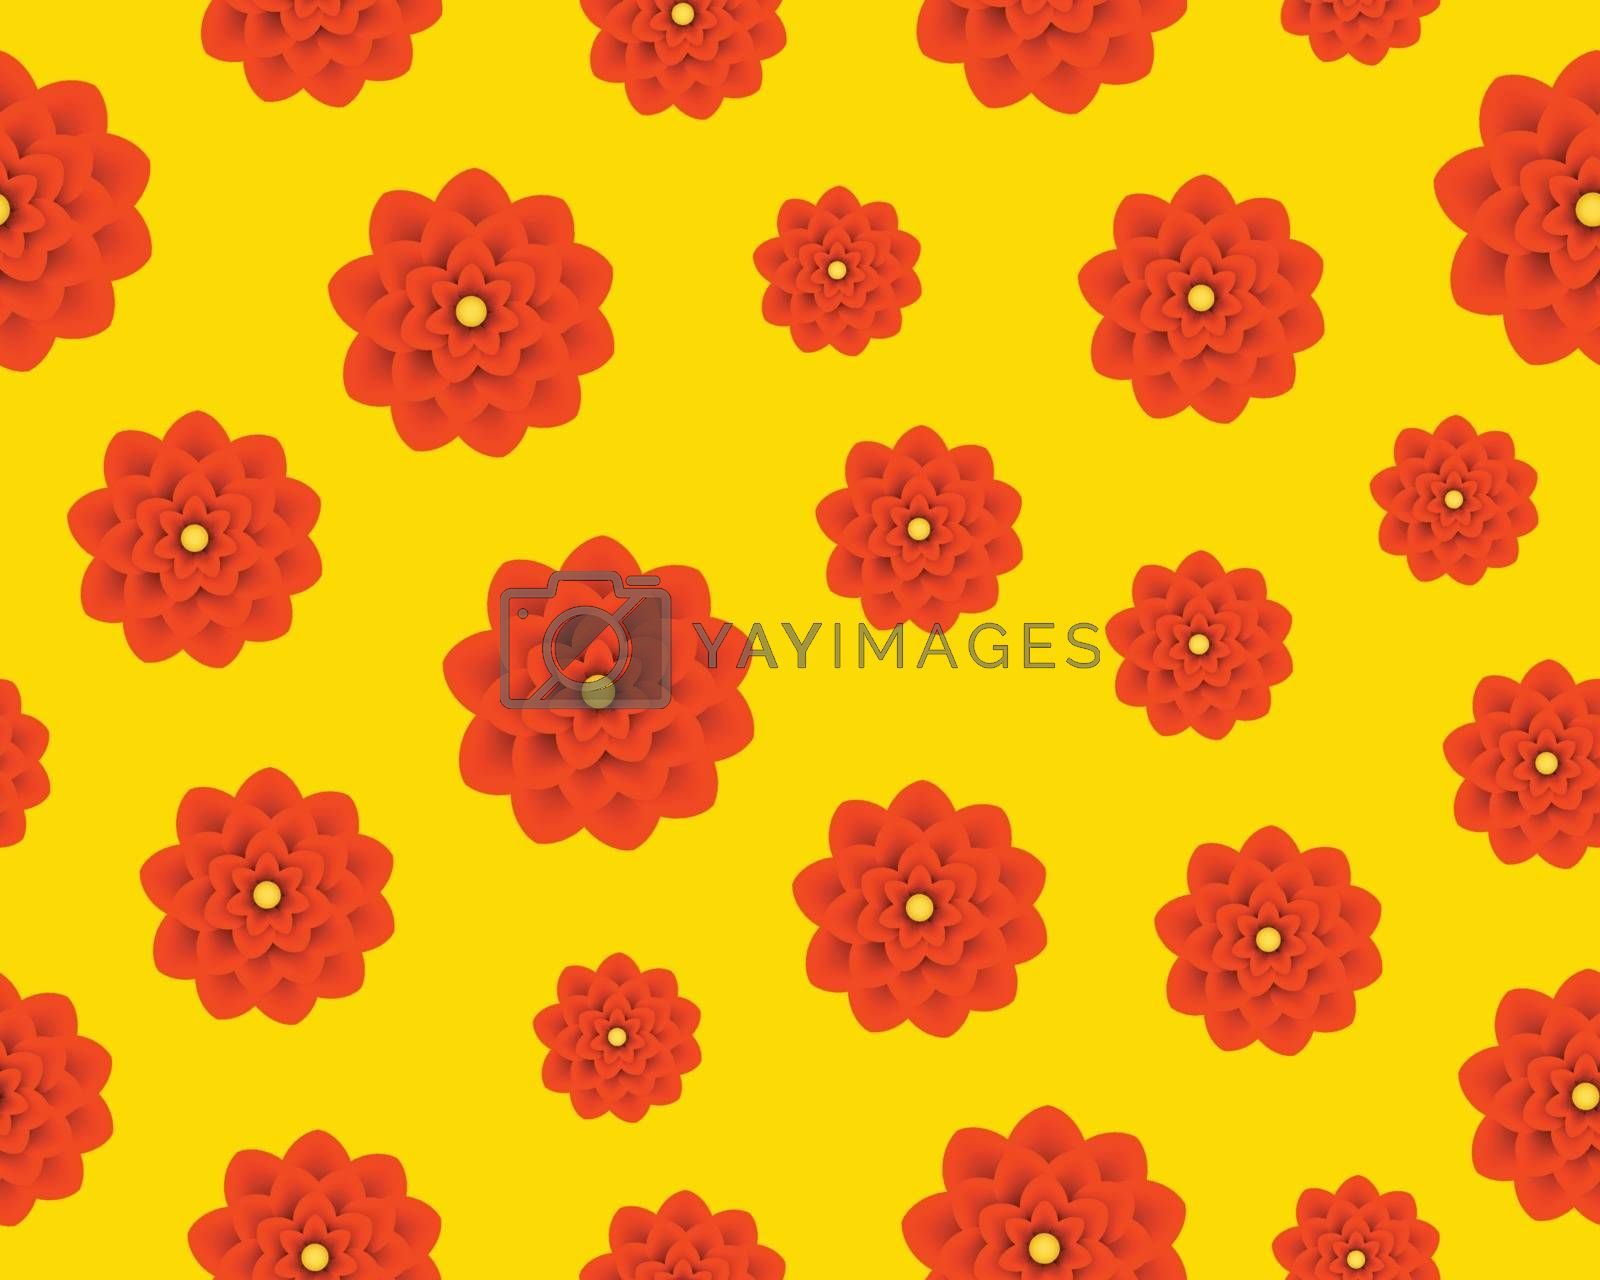 Floral spring seamless pattern. Orange flowers on yellow isolated background.